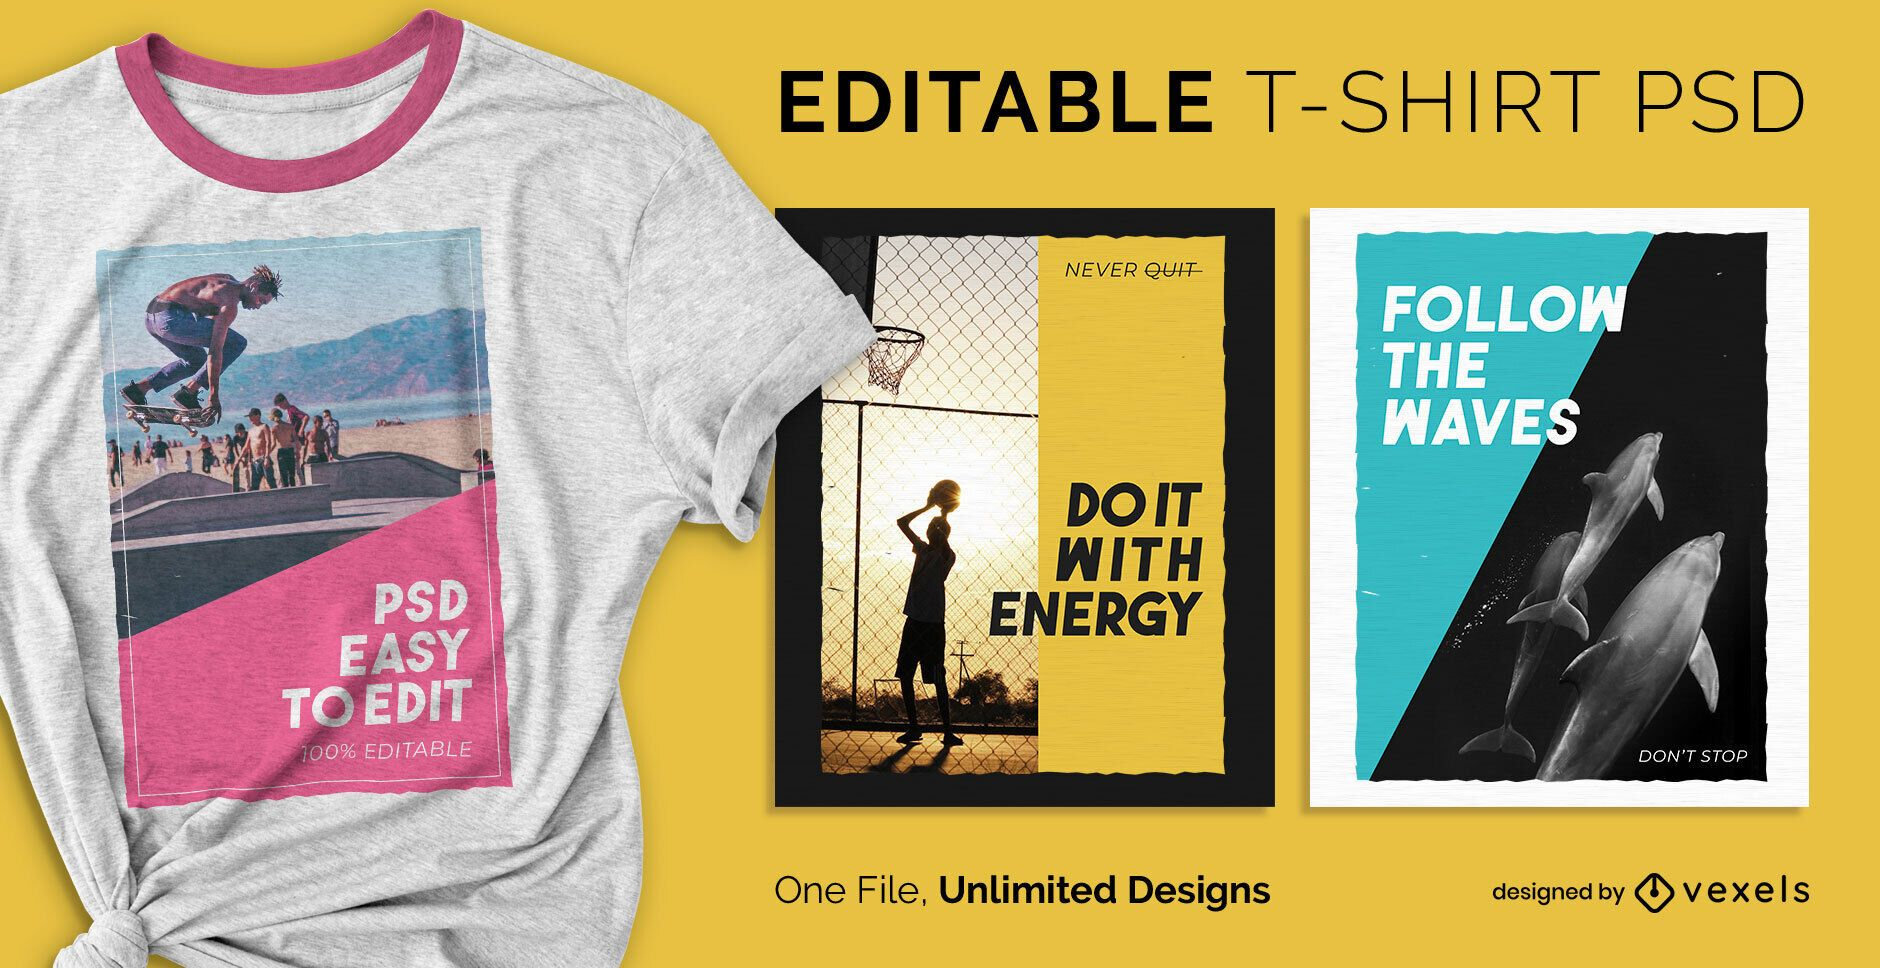 Action poster scalable t-shirt psd